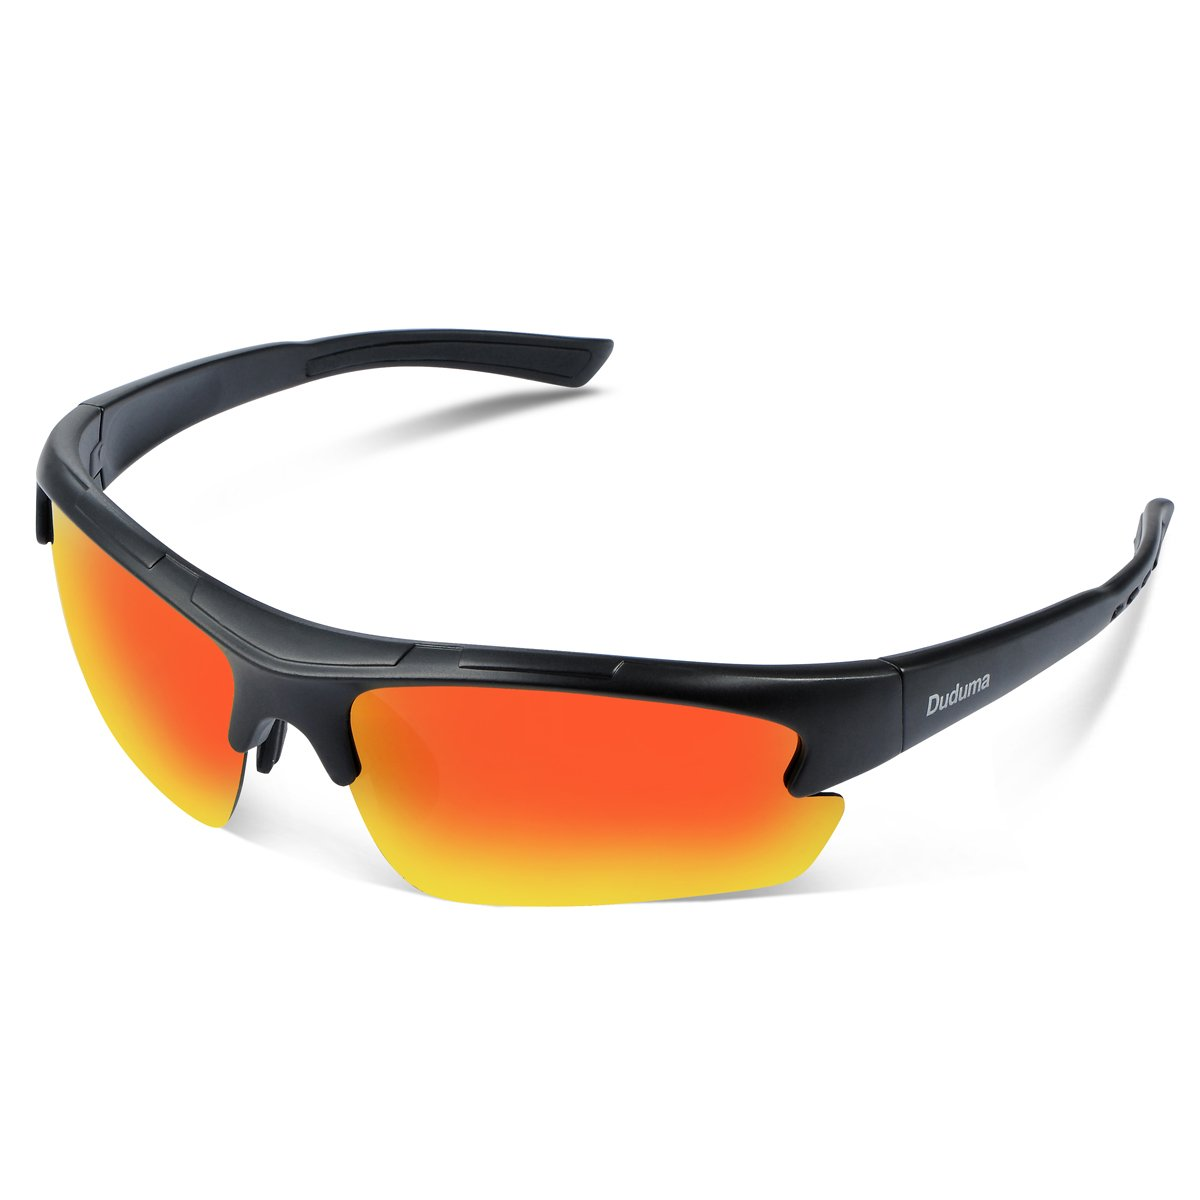 bbe8c735c75 Duduma Polarised Sports Sunglasses mens and womens for Fishing Running  Cycling Driving Ski Golf Tr62 product